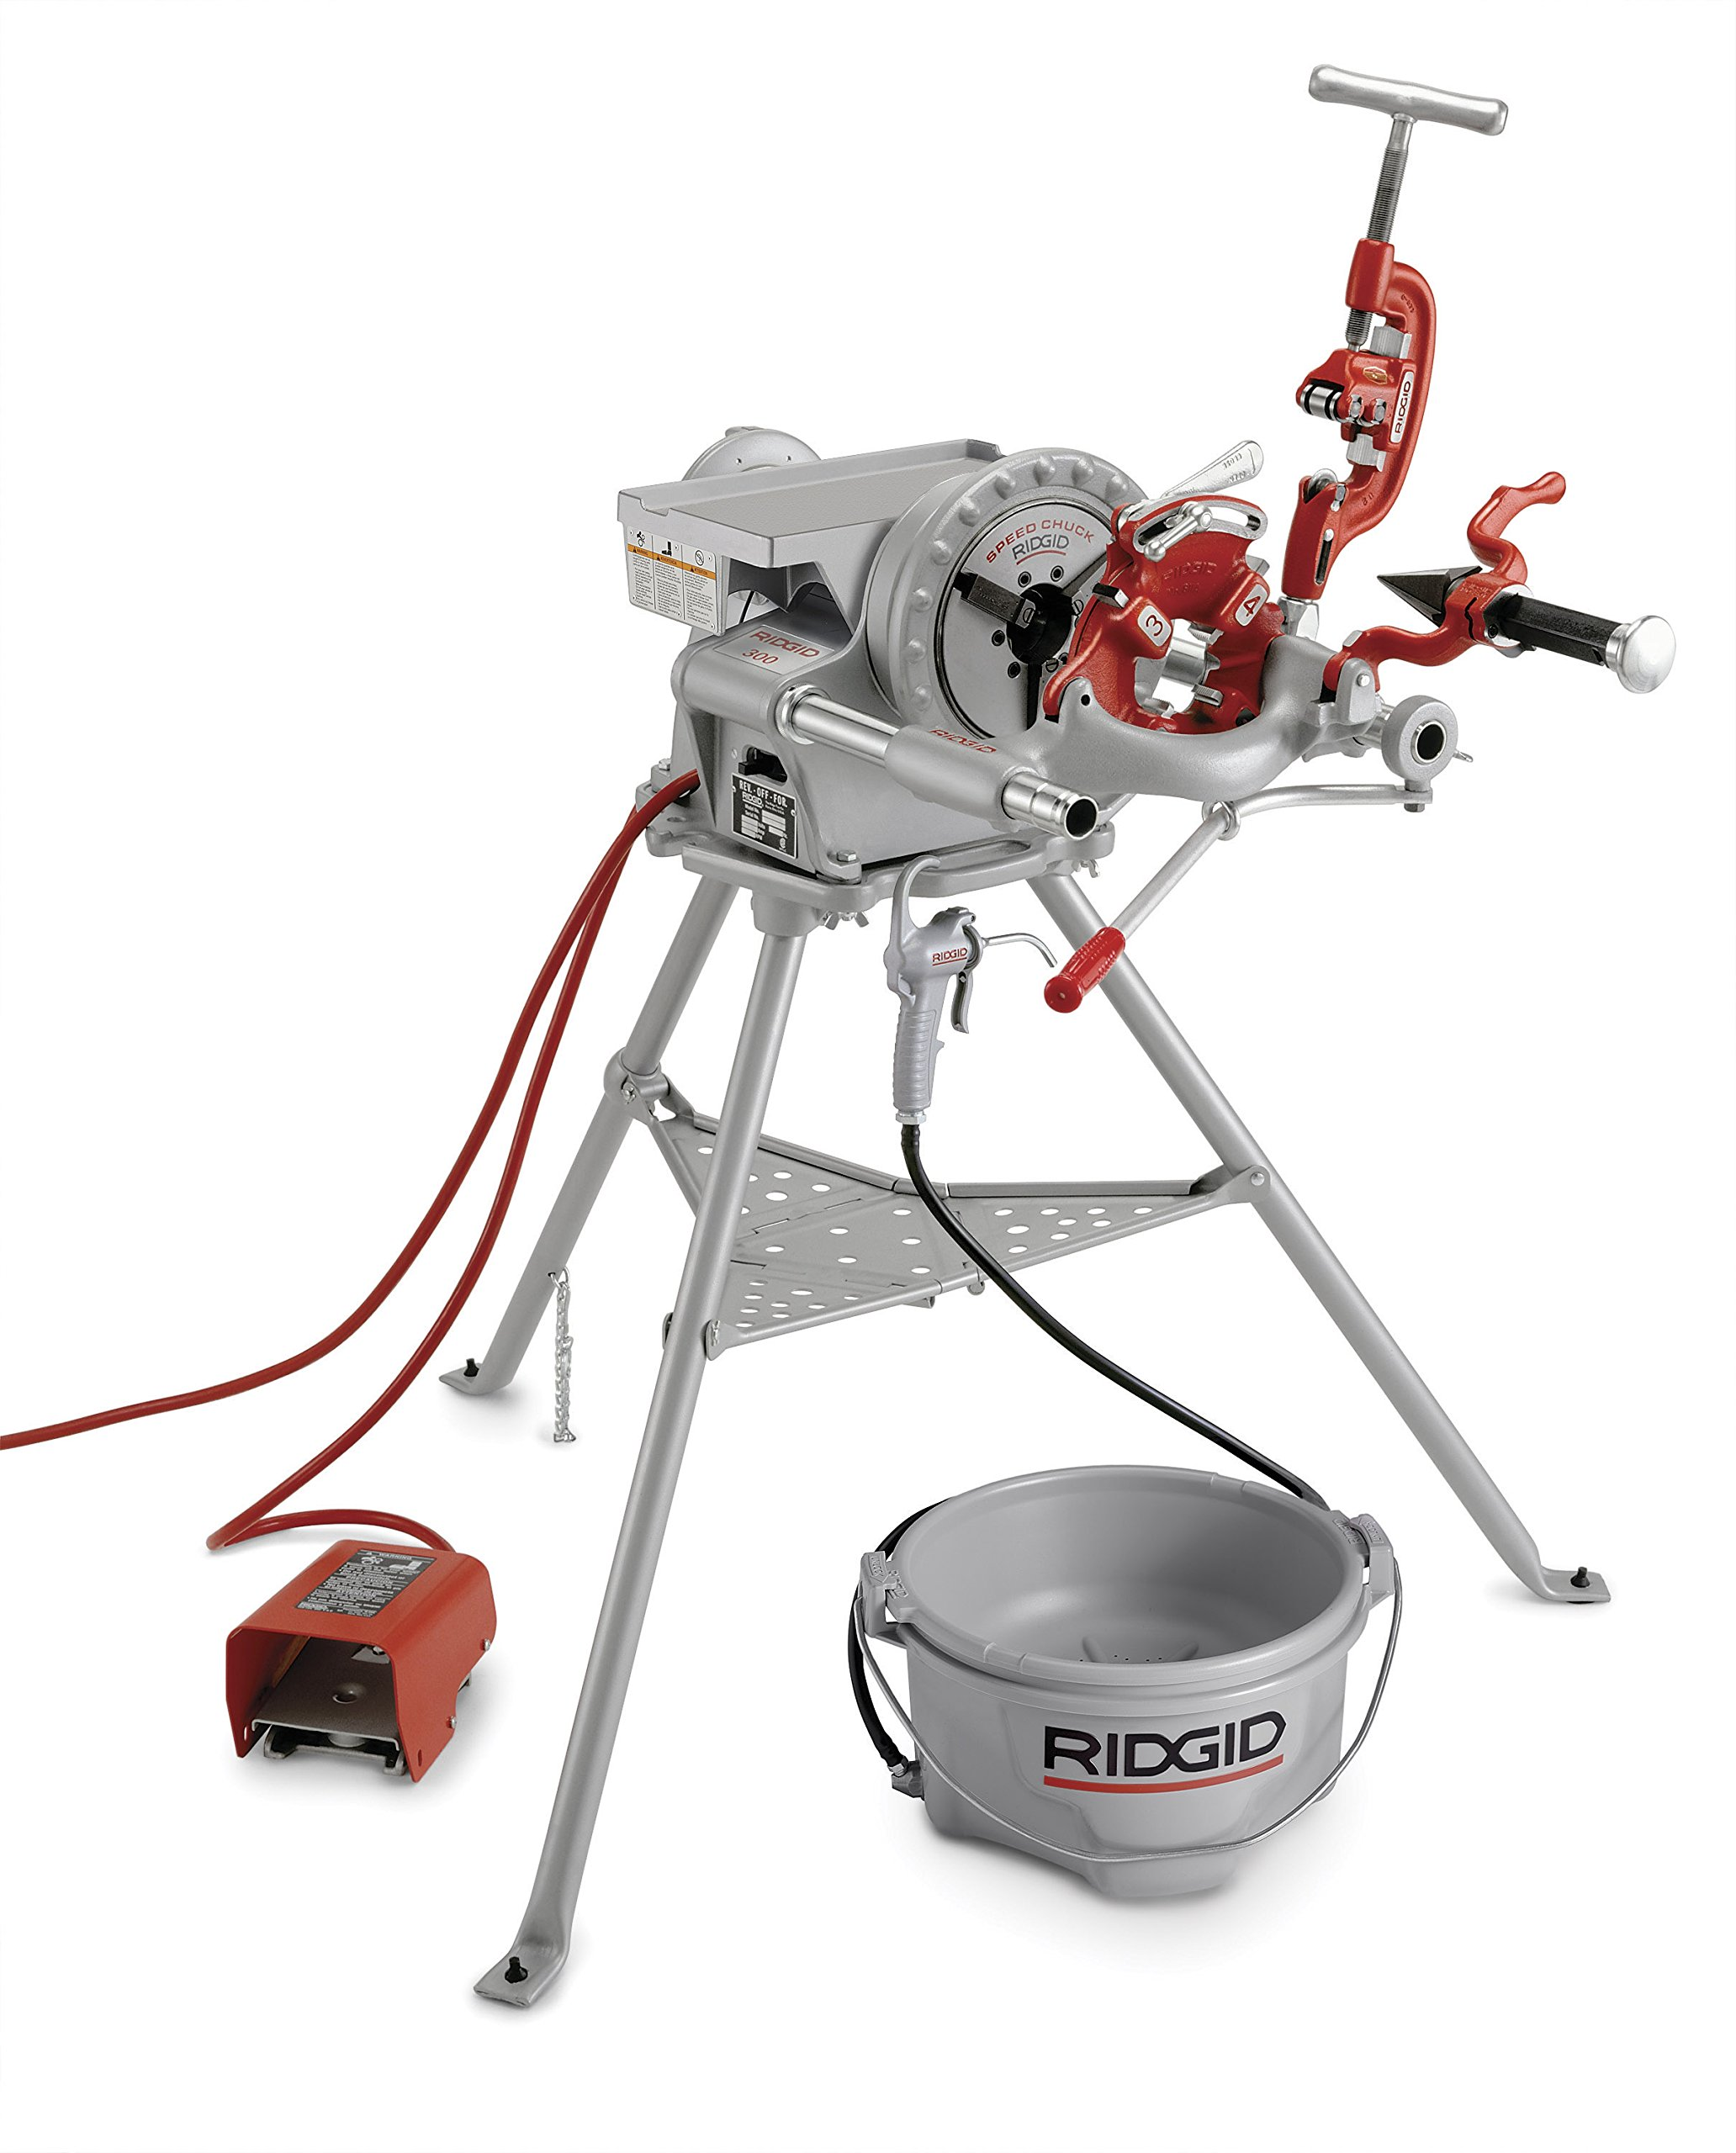 RIDGID 15722 Model 300 Power Drive Complete, 57 RPM Pipe Threading Machine and 1/2-Inch to 3/4-Inch, 1-Inch to 2-Inch Universal Alloy Threading Die Heads, Oiler Included